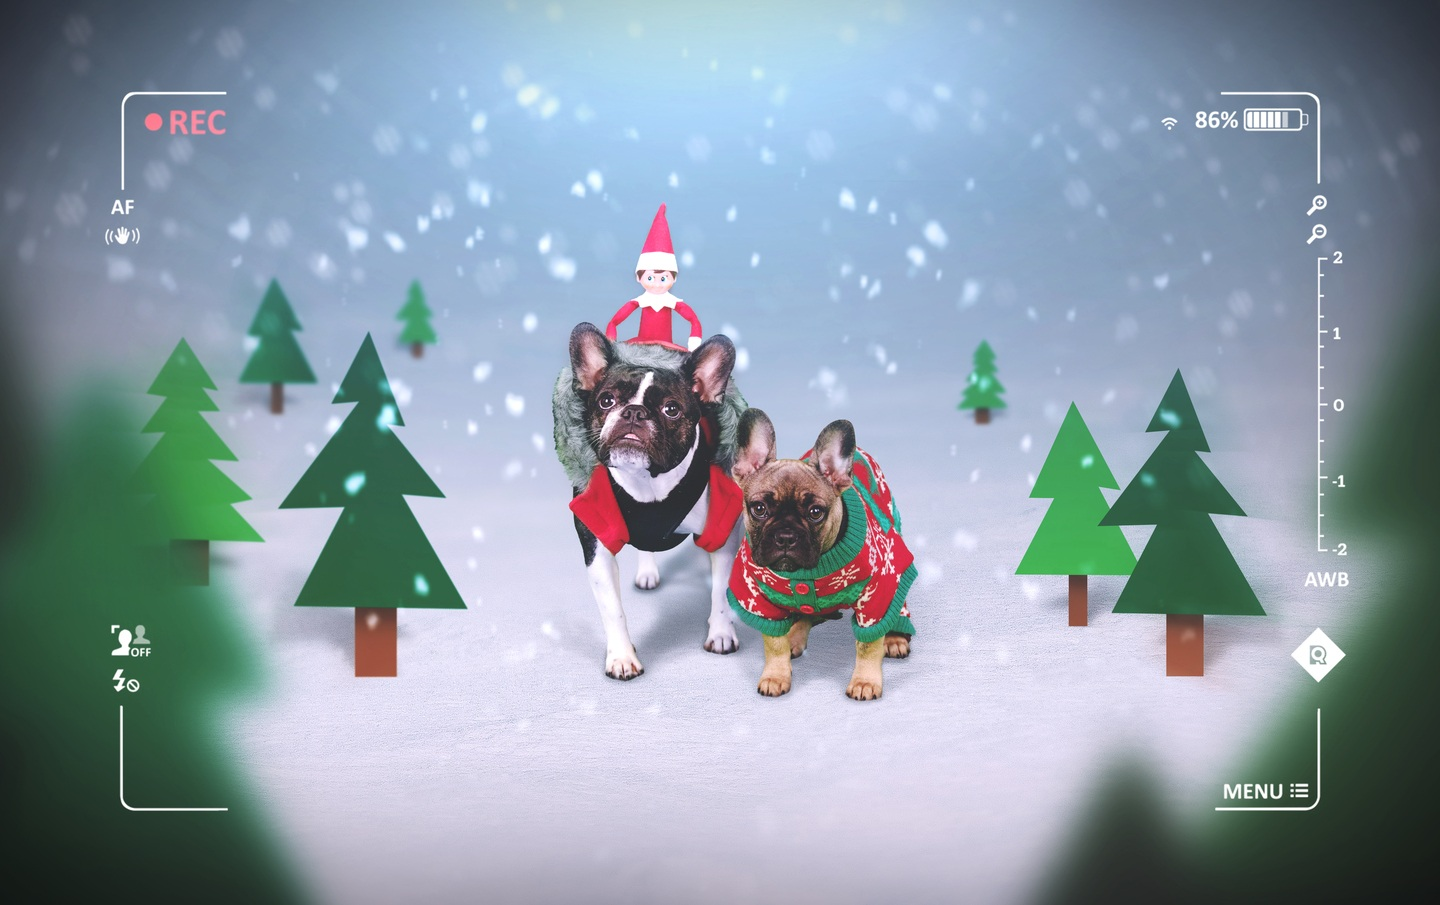 Two dogs transport the Elf on a Shelf